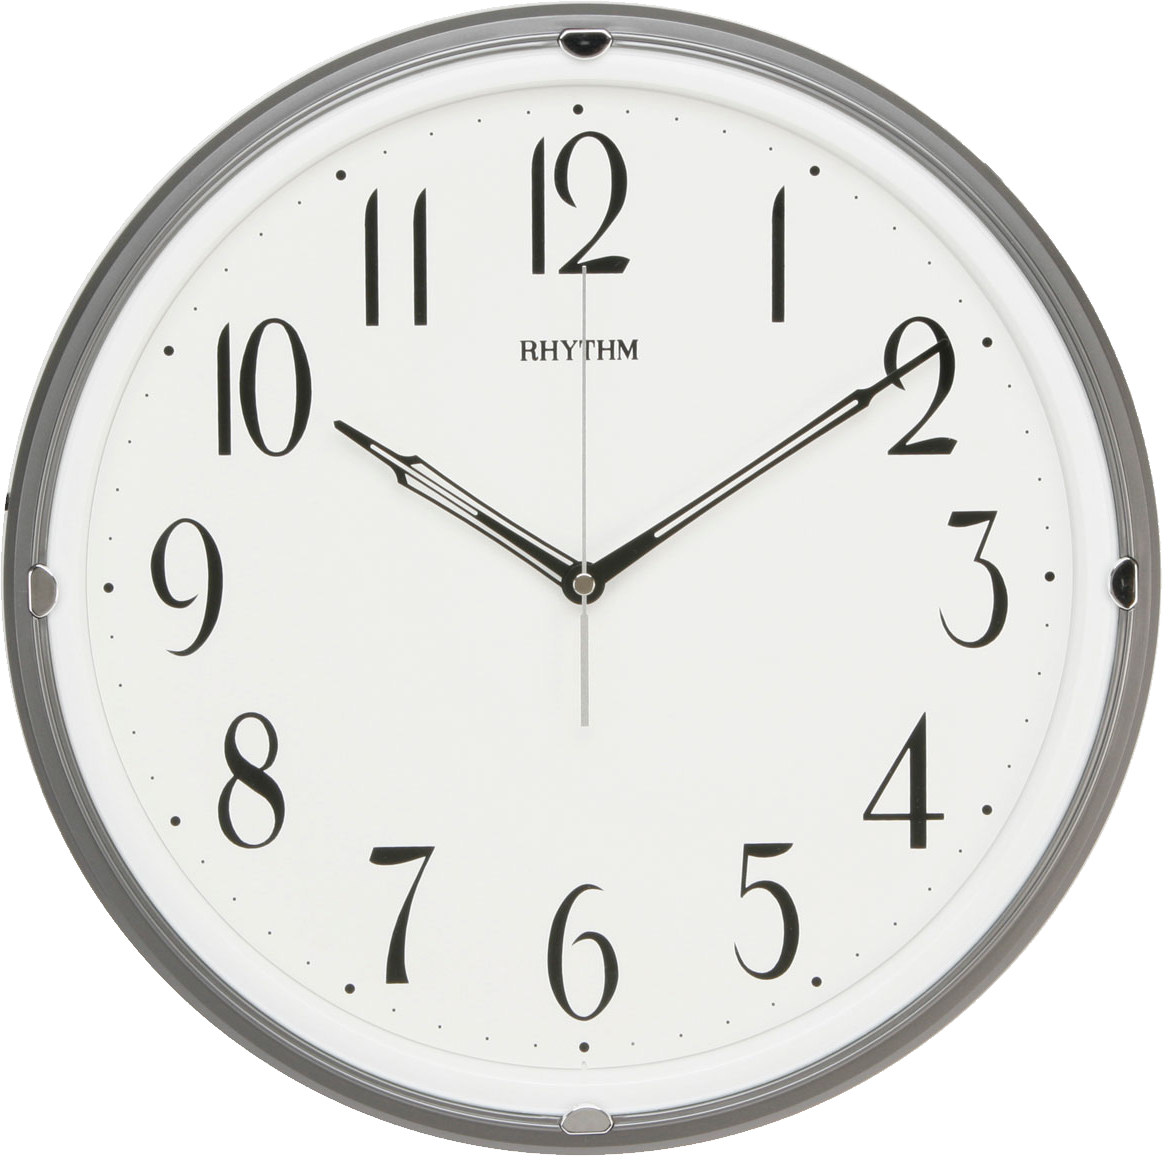 Clock Hd Transparent Png Background image #25781